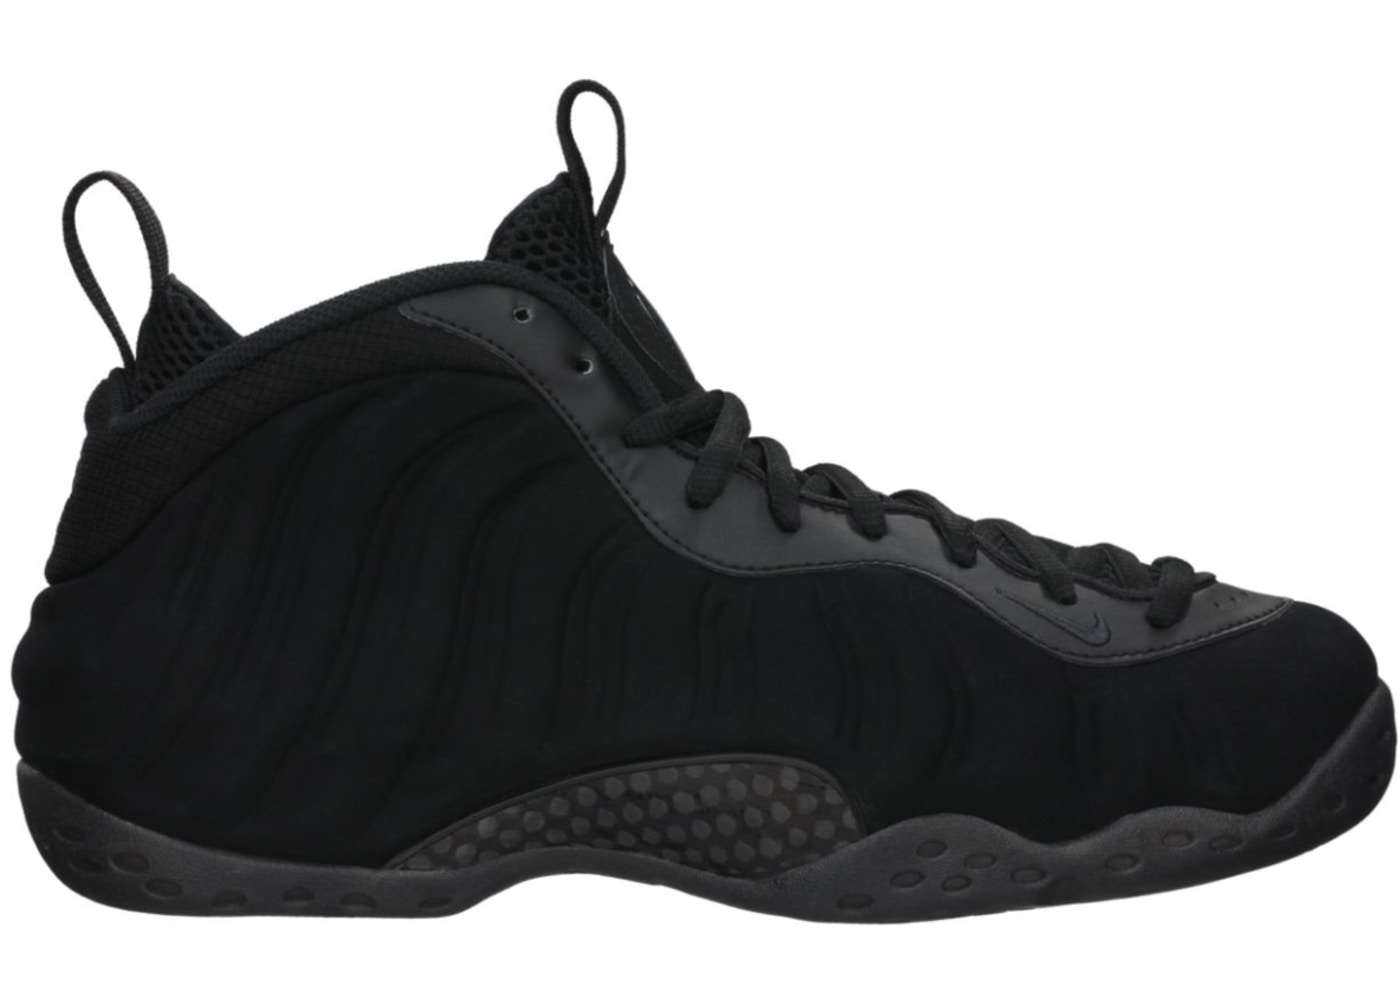 sports shoes a8069 add14 Air Foamposite Pro Black Suede